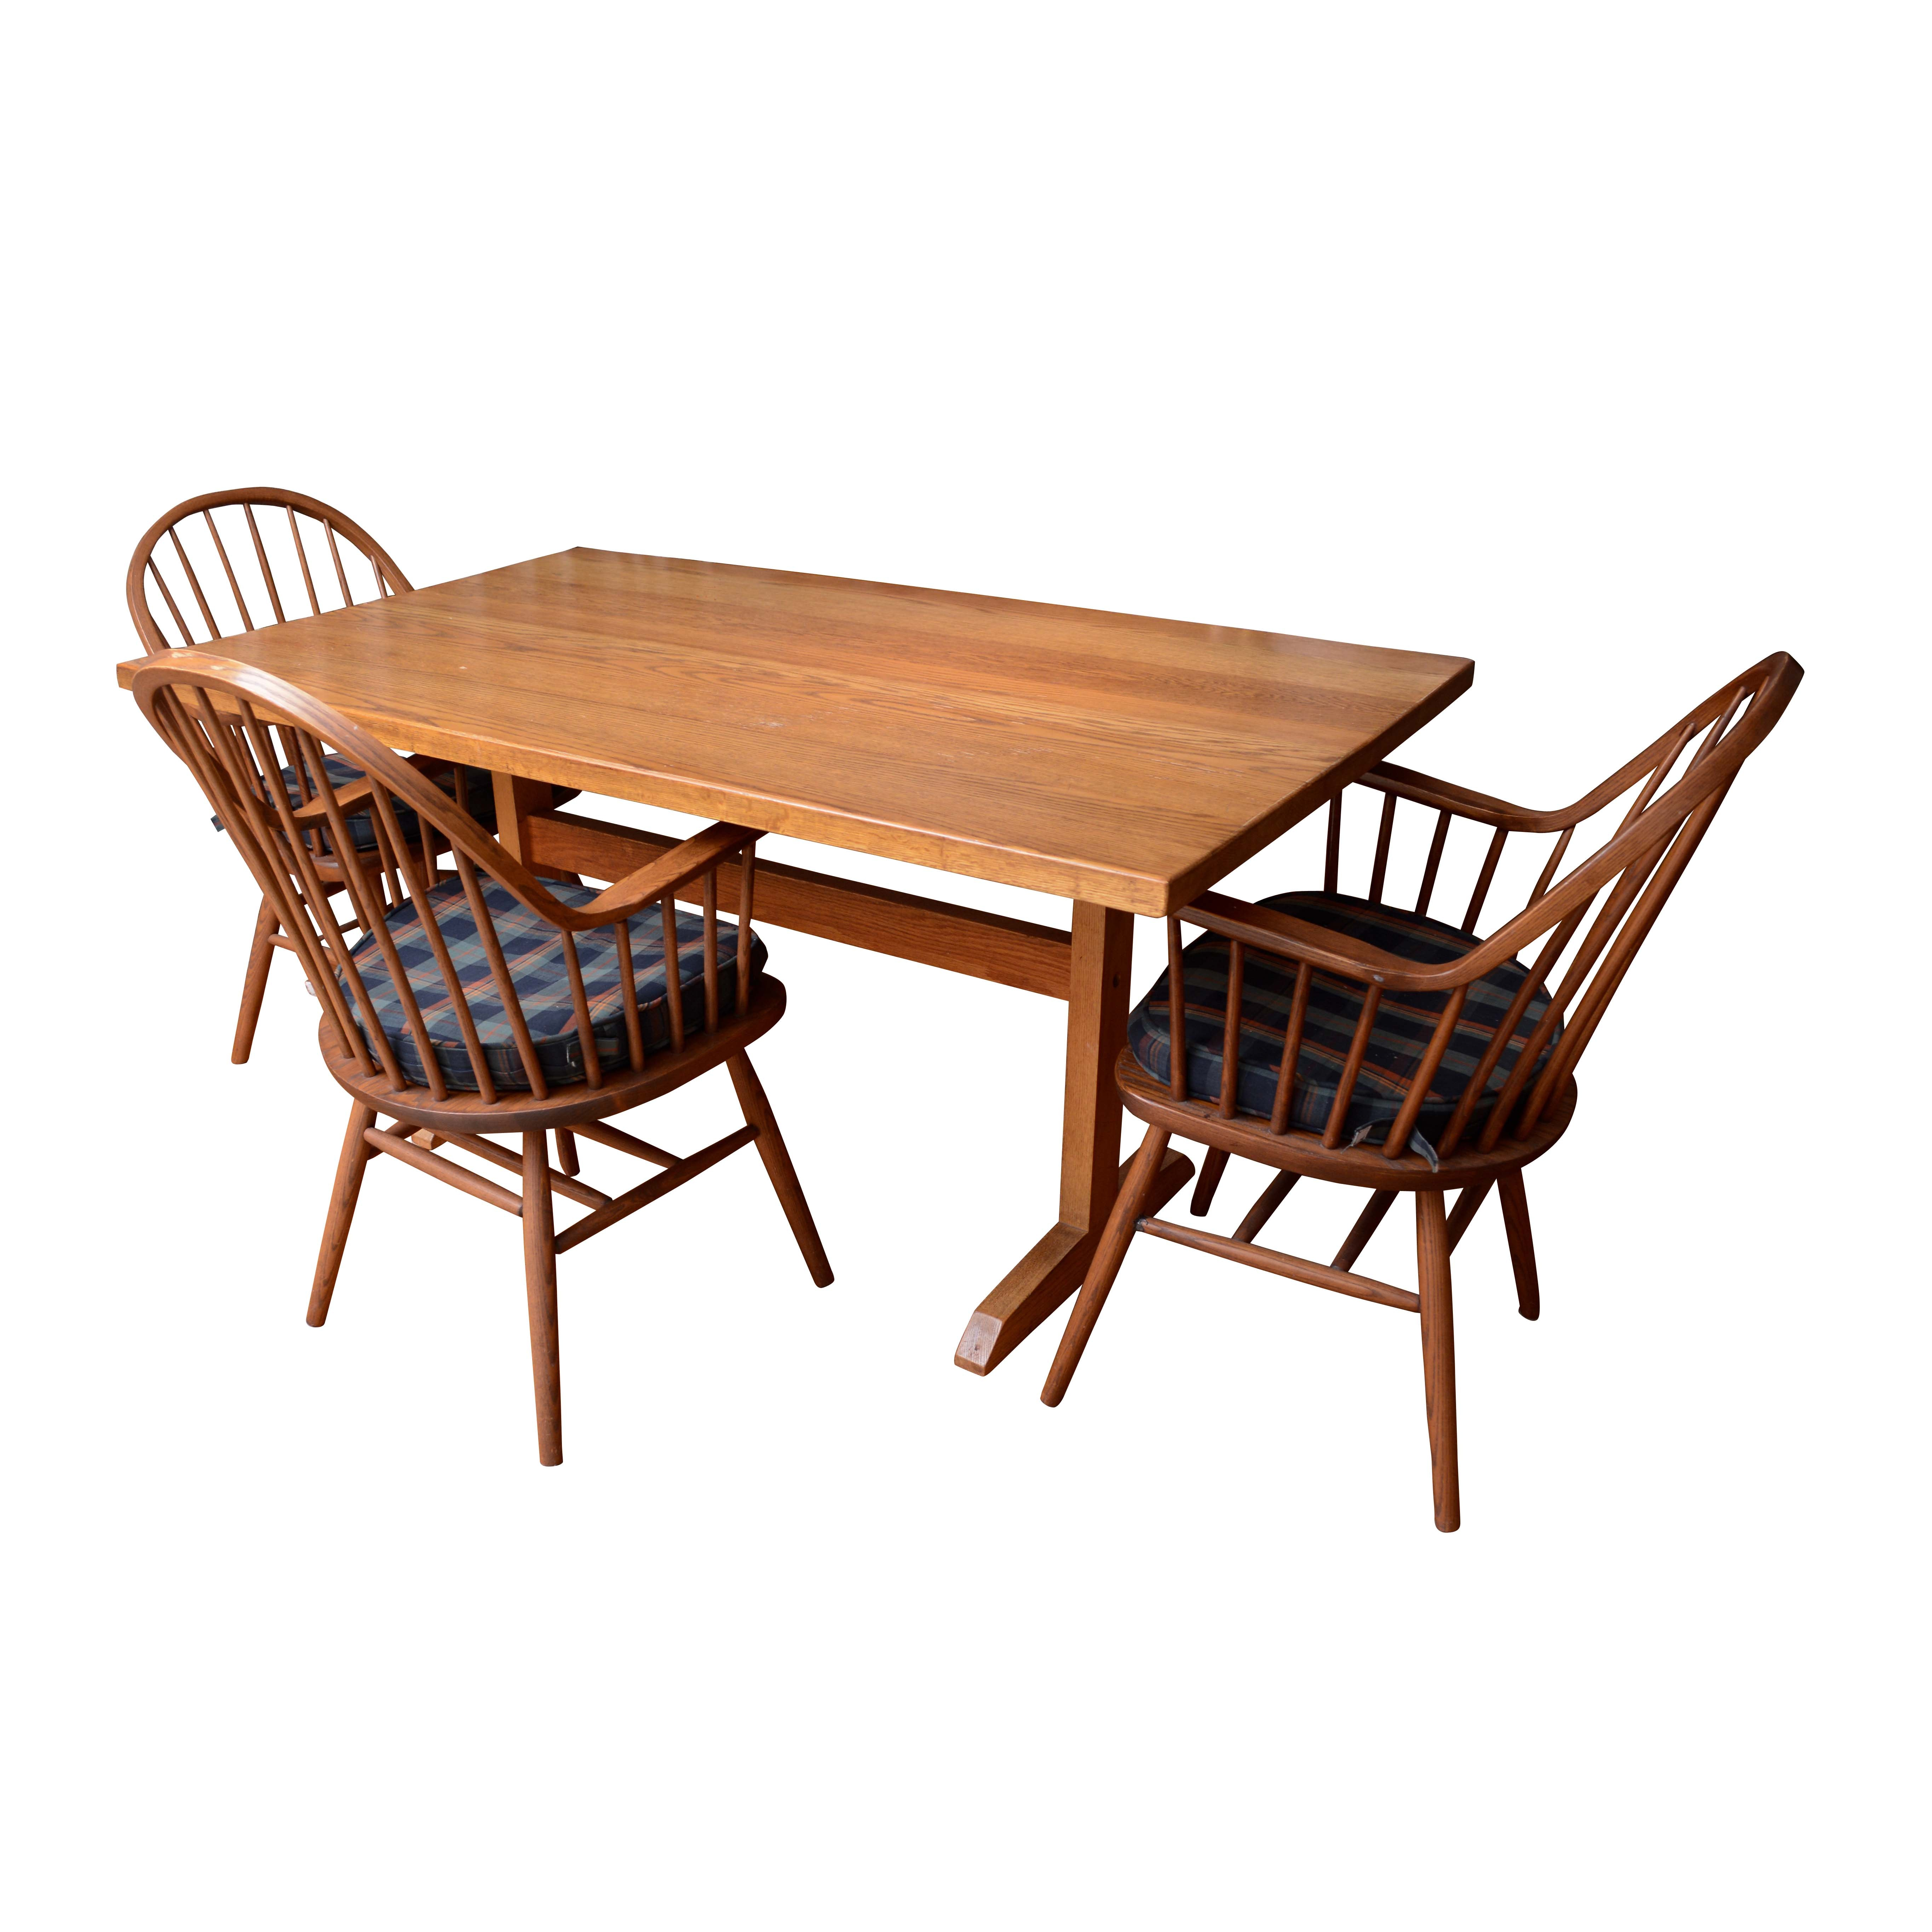 Trestle Leg Dining Table and Windsor Style Dining Chairs